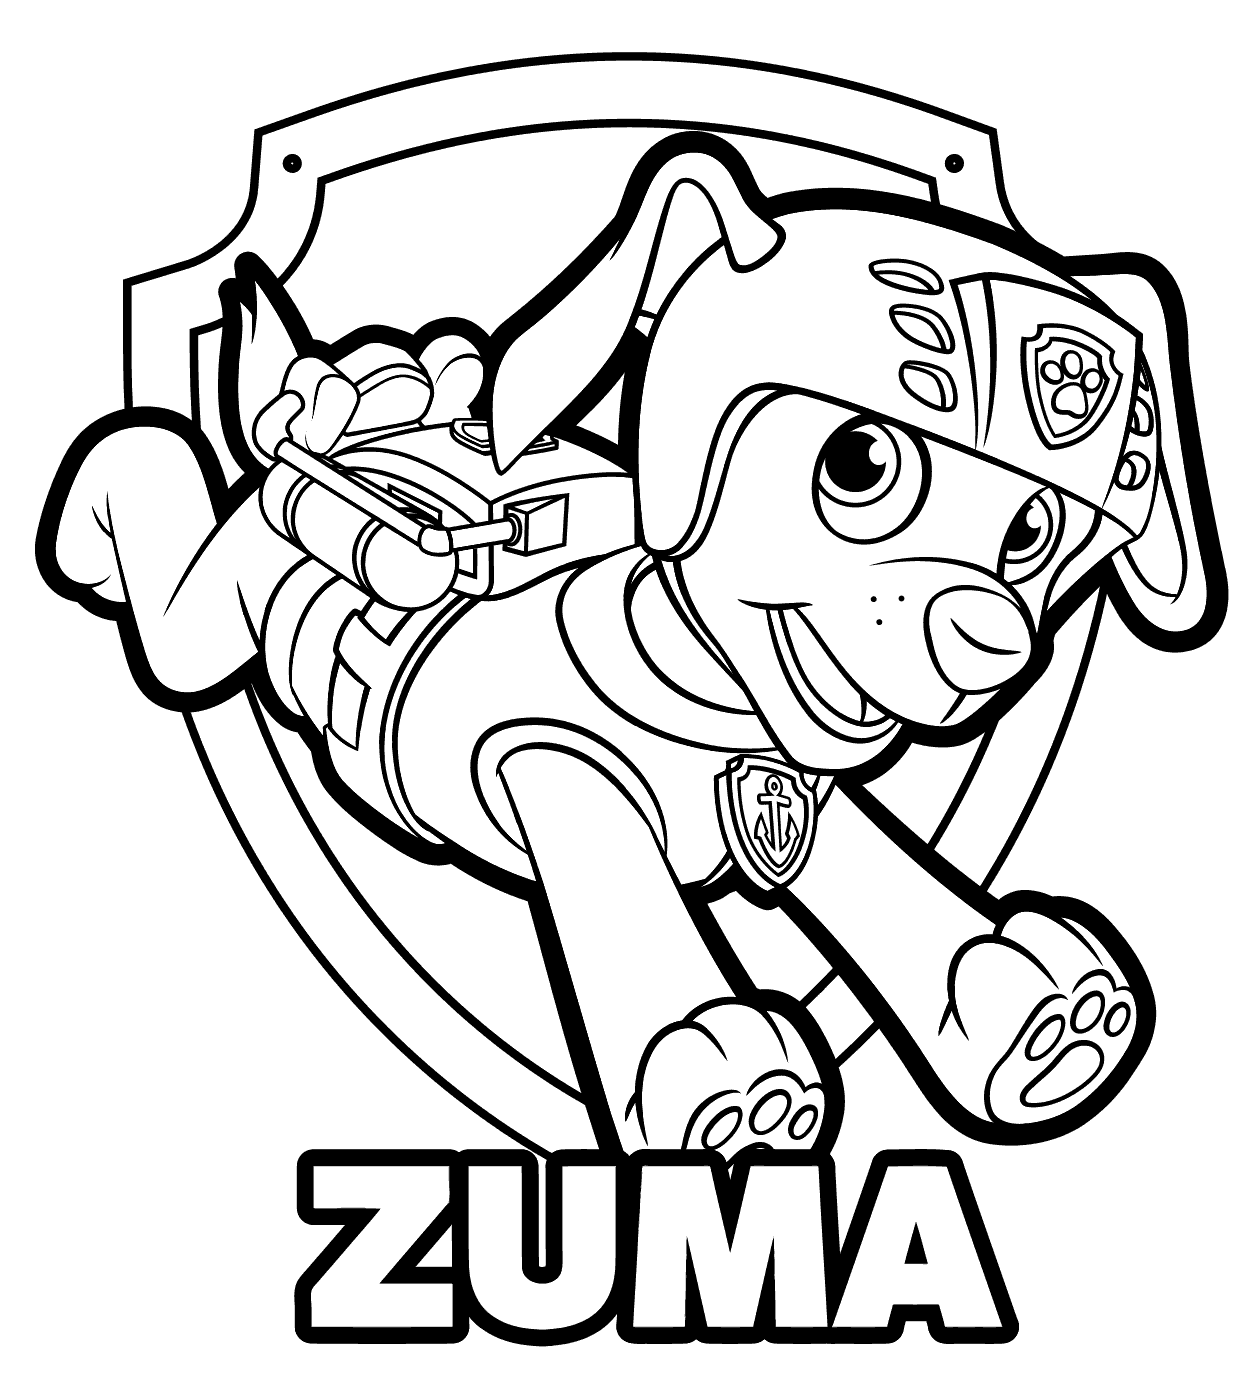 paw patrol cars paw patrol coloring pages car printable coloring pages cars patrol paw